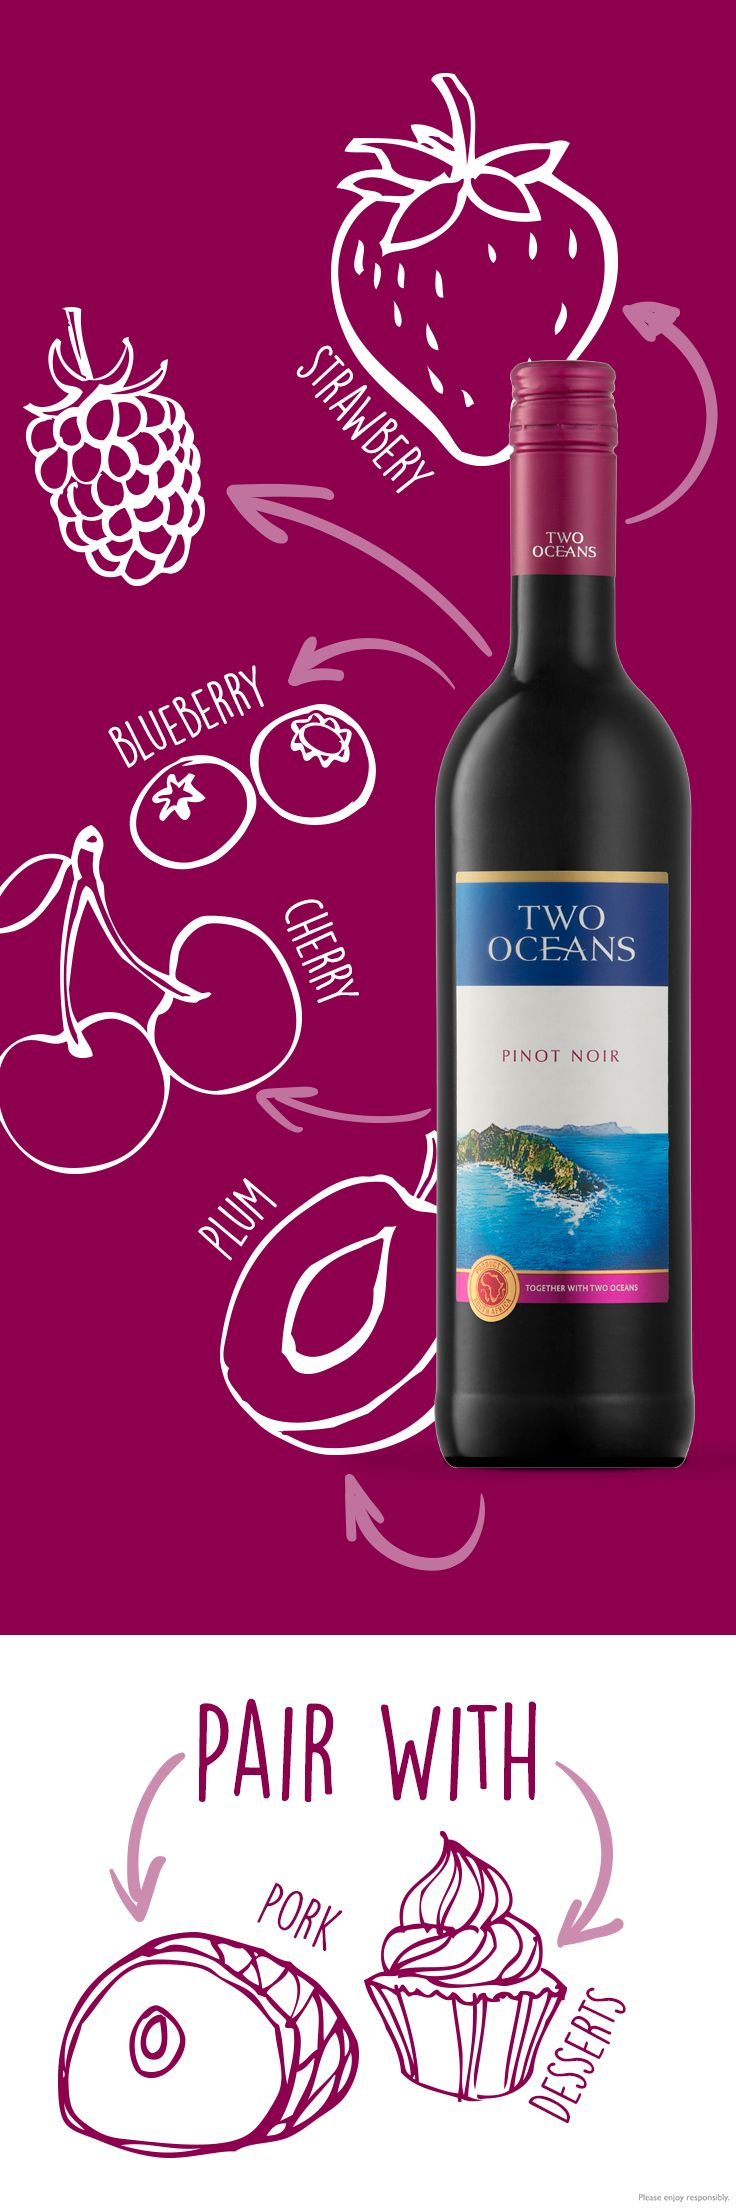 Two Oceans Pinot Noir pairs with light red meat, game, duck, and pasta dishes. The more you know!